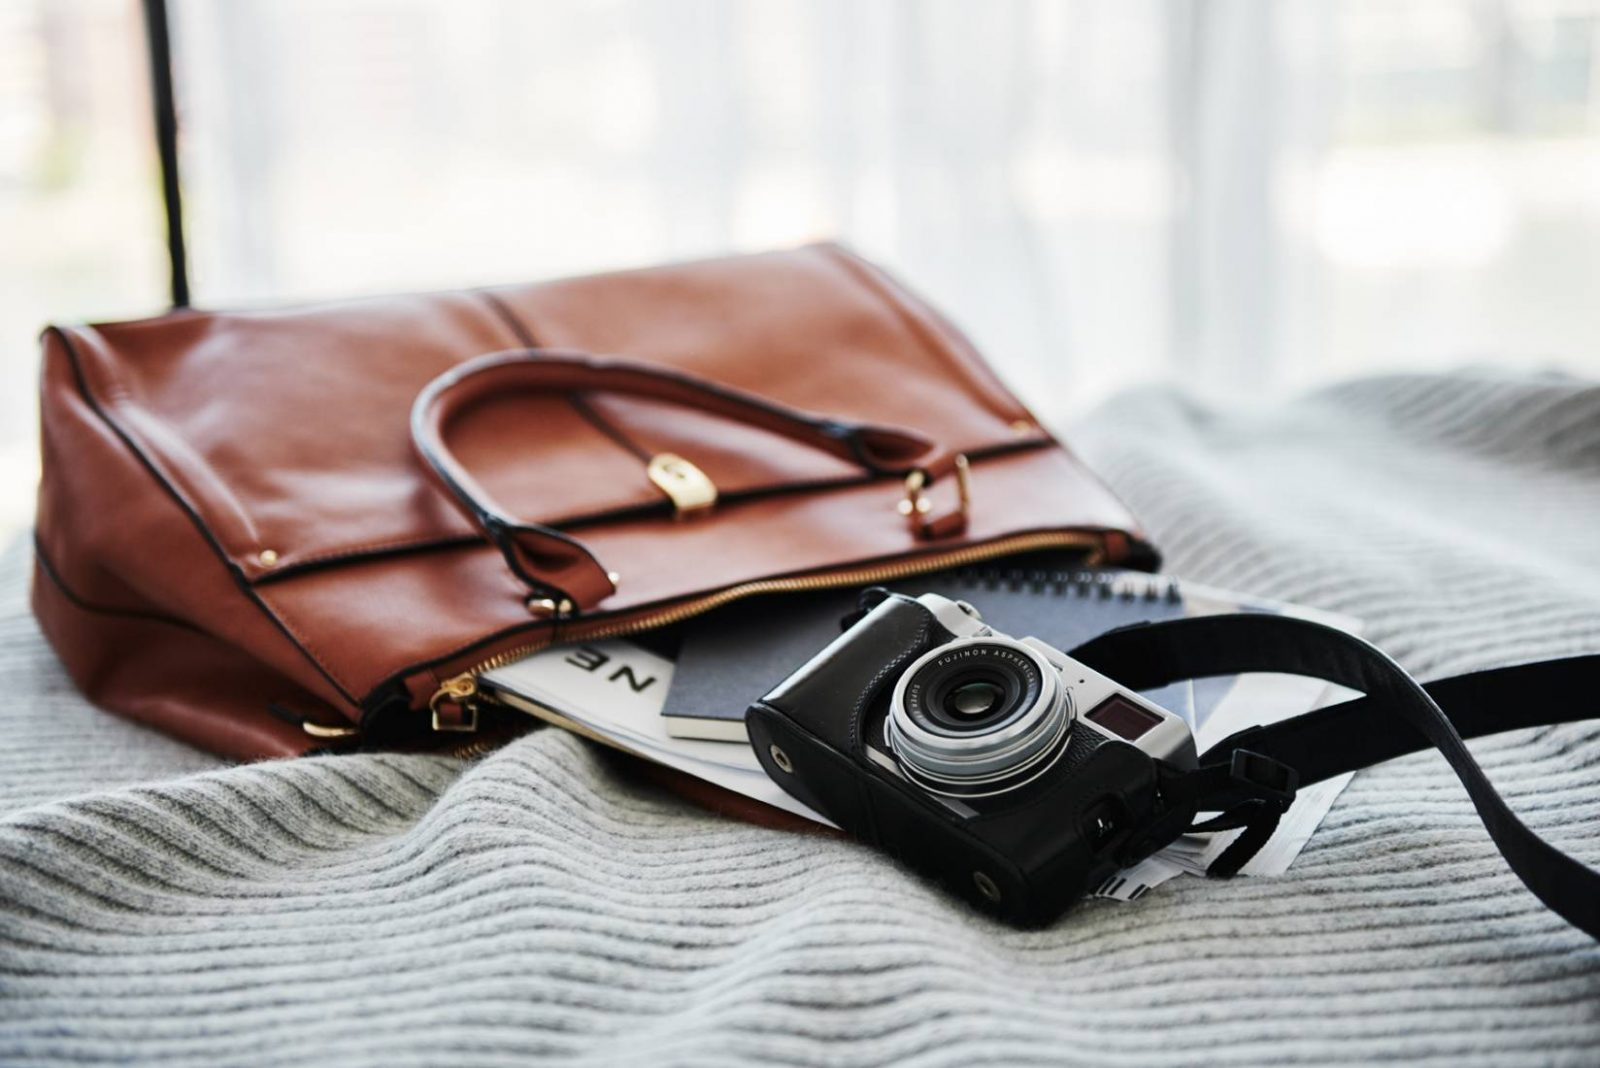 Tan leather handbag with camera laying on bed